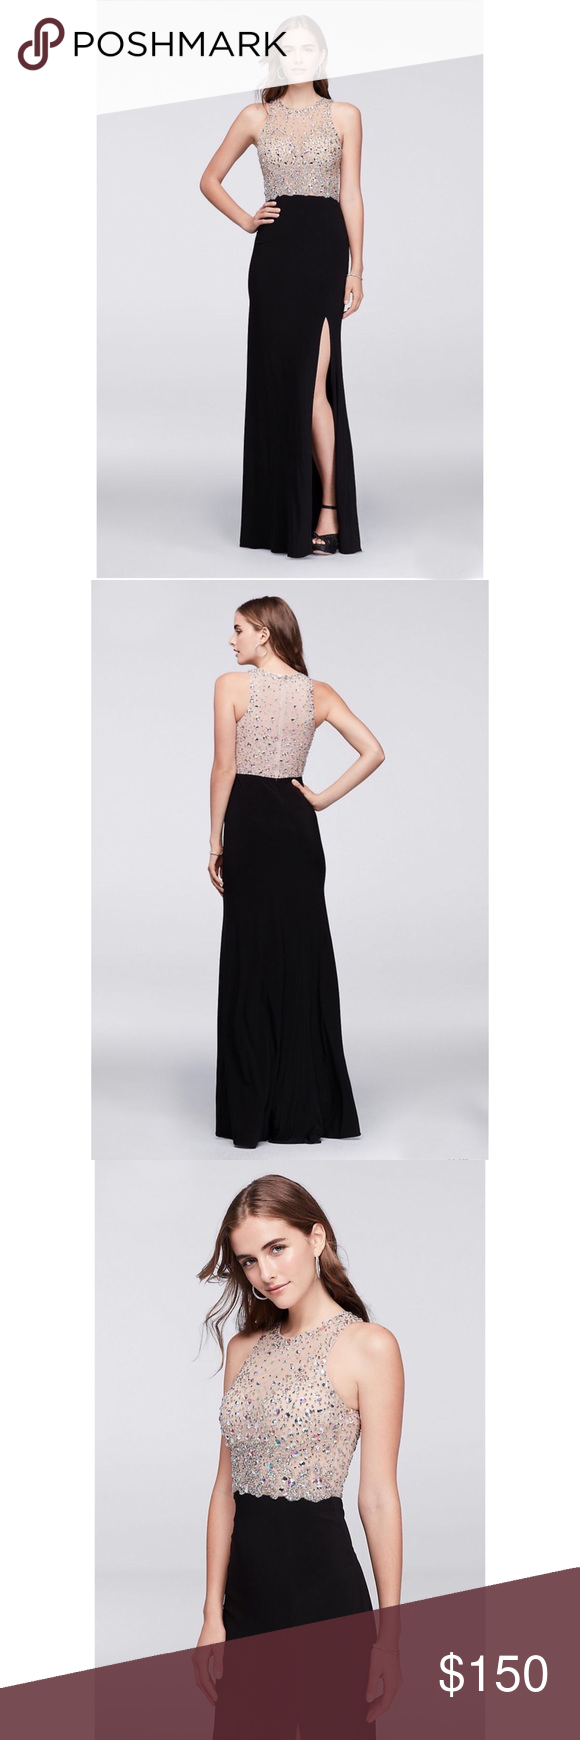 Davidus bridal black and nude sparkly prom dress sparkly prom